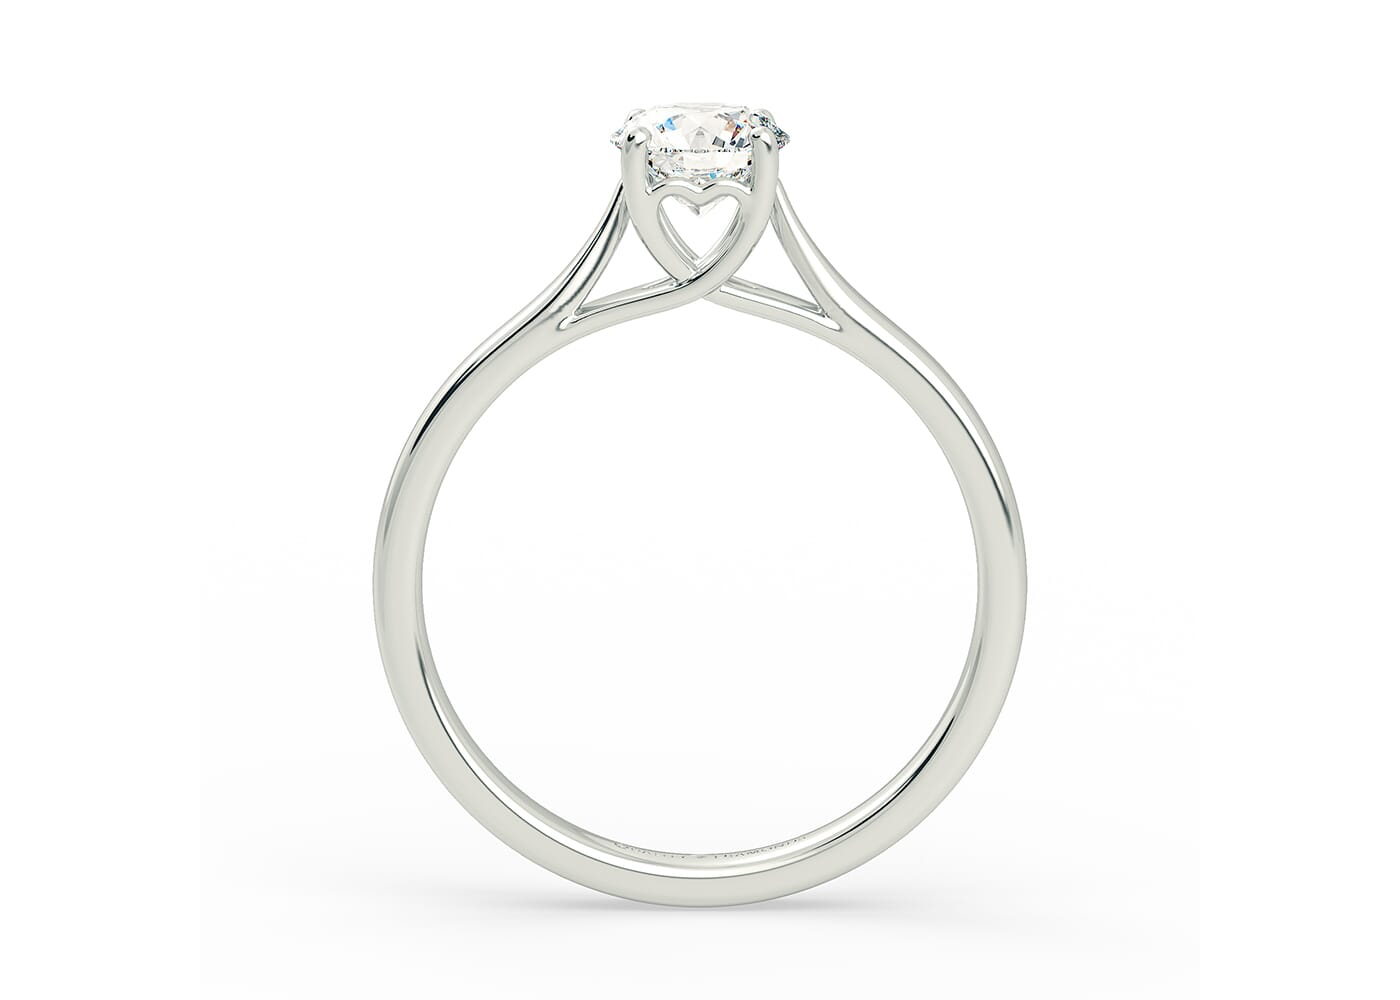 wg of we love for this definitely romantic captures engagement fabfitfun subtle the because sophisticated beautifully most essence magazine ring three stoned elegance out it bride bunch minimalist odette rings